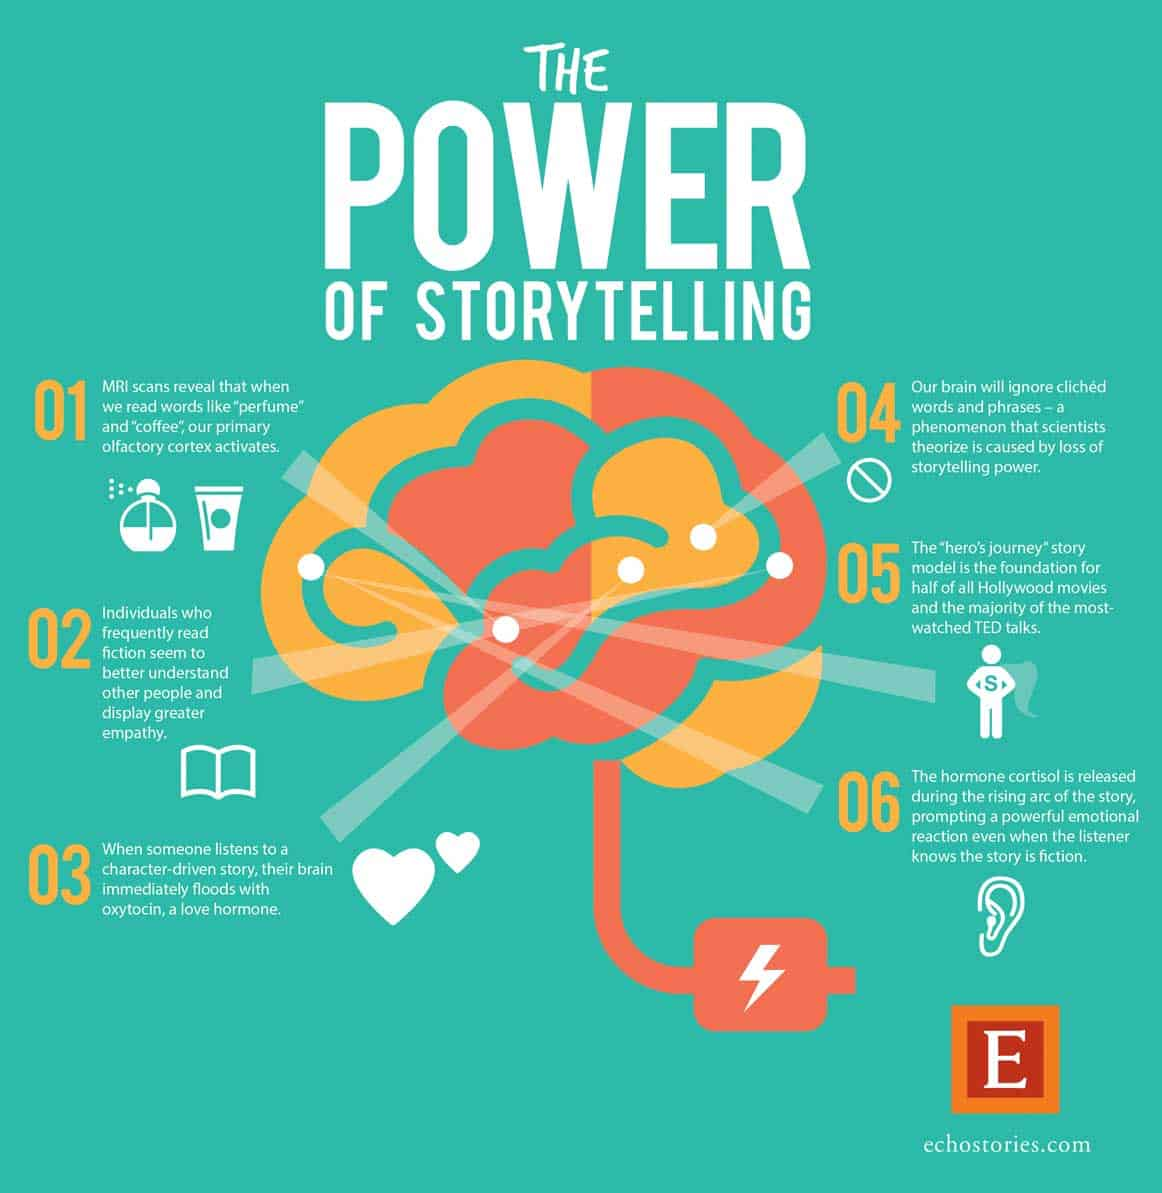 The Power of Stories and the research behind Storytelling Science